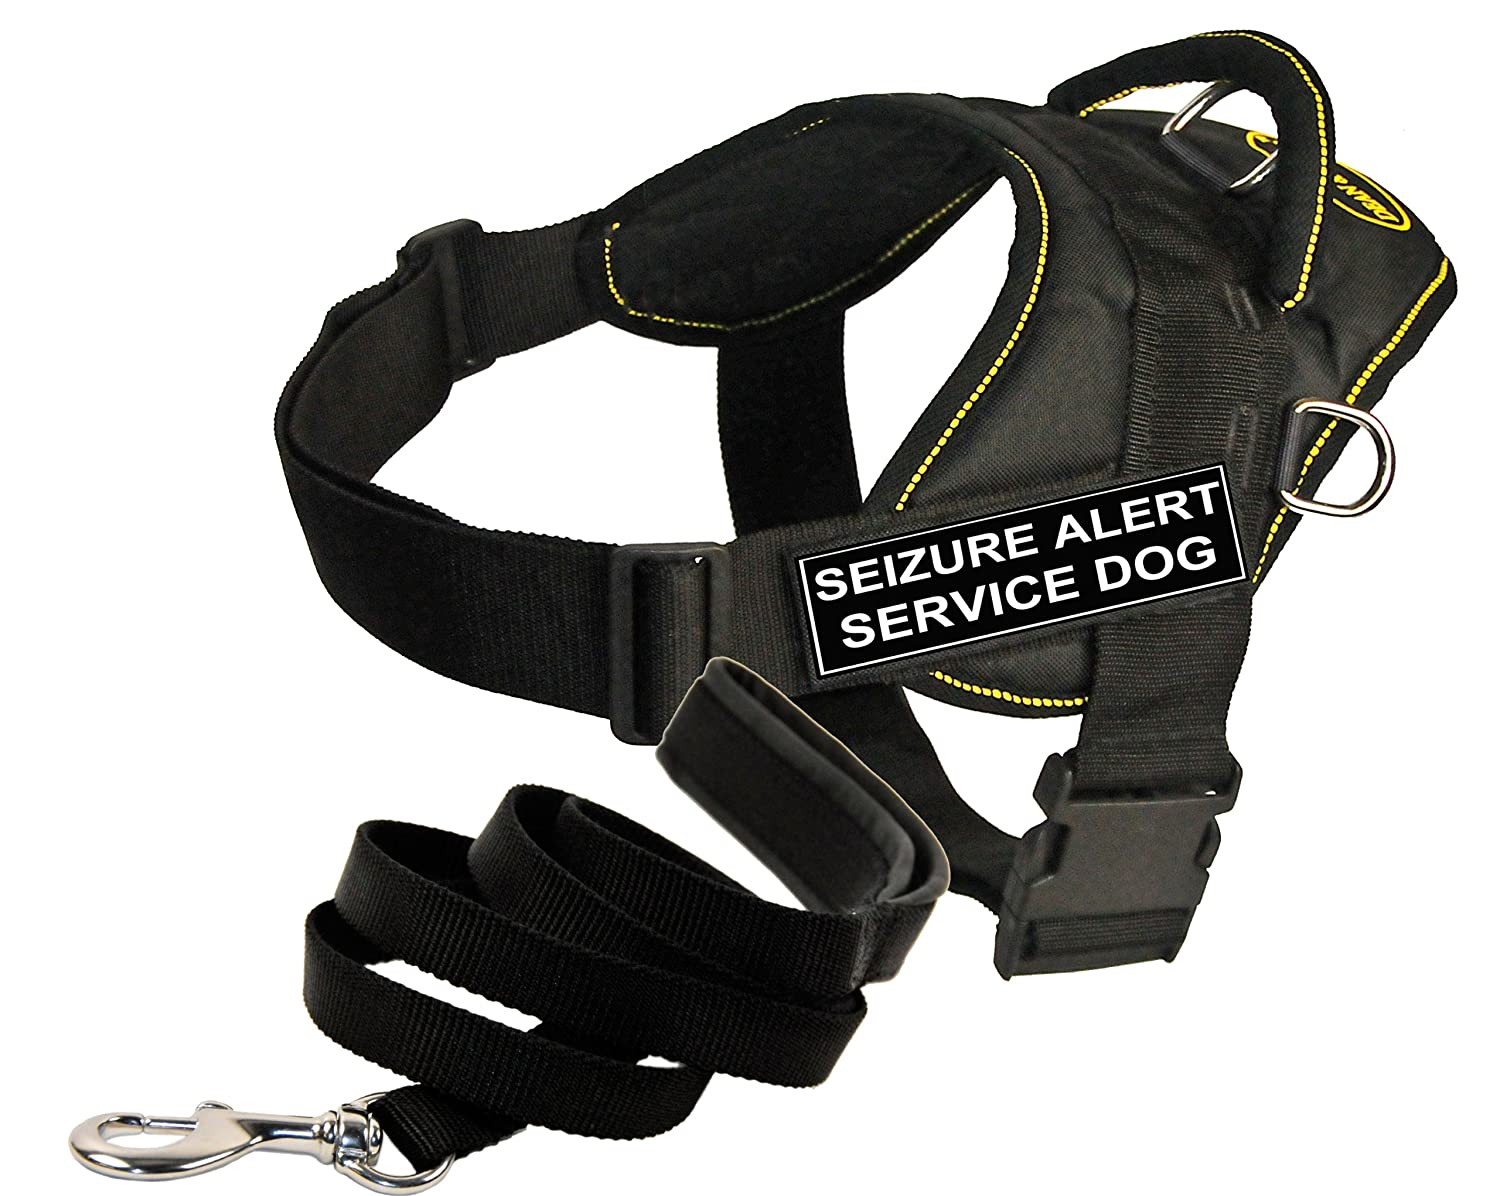 Dean and Tyler Bundle One DT Fun Works  Harness, Seizure Alert Service Dog, Yellow, XLarge + One Padded Puppy  Leash, 6 FT Stainless Snap Black